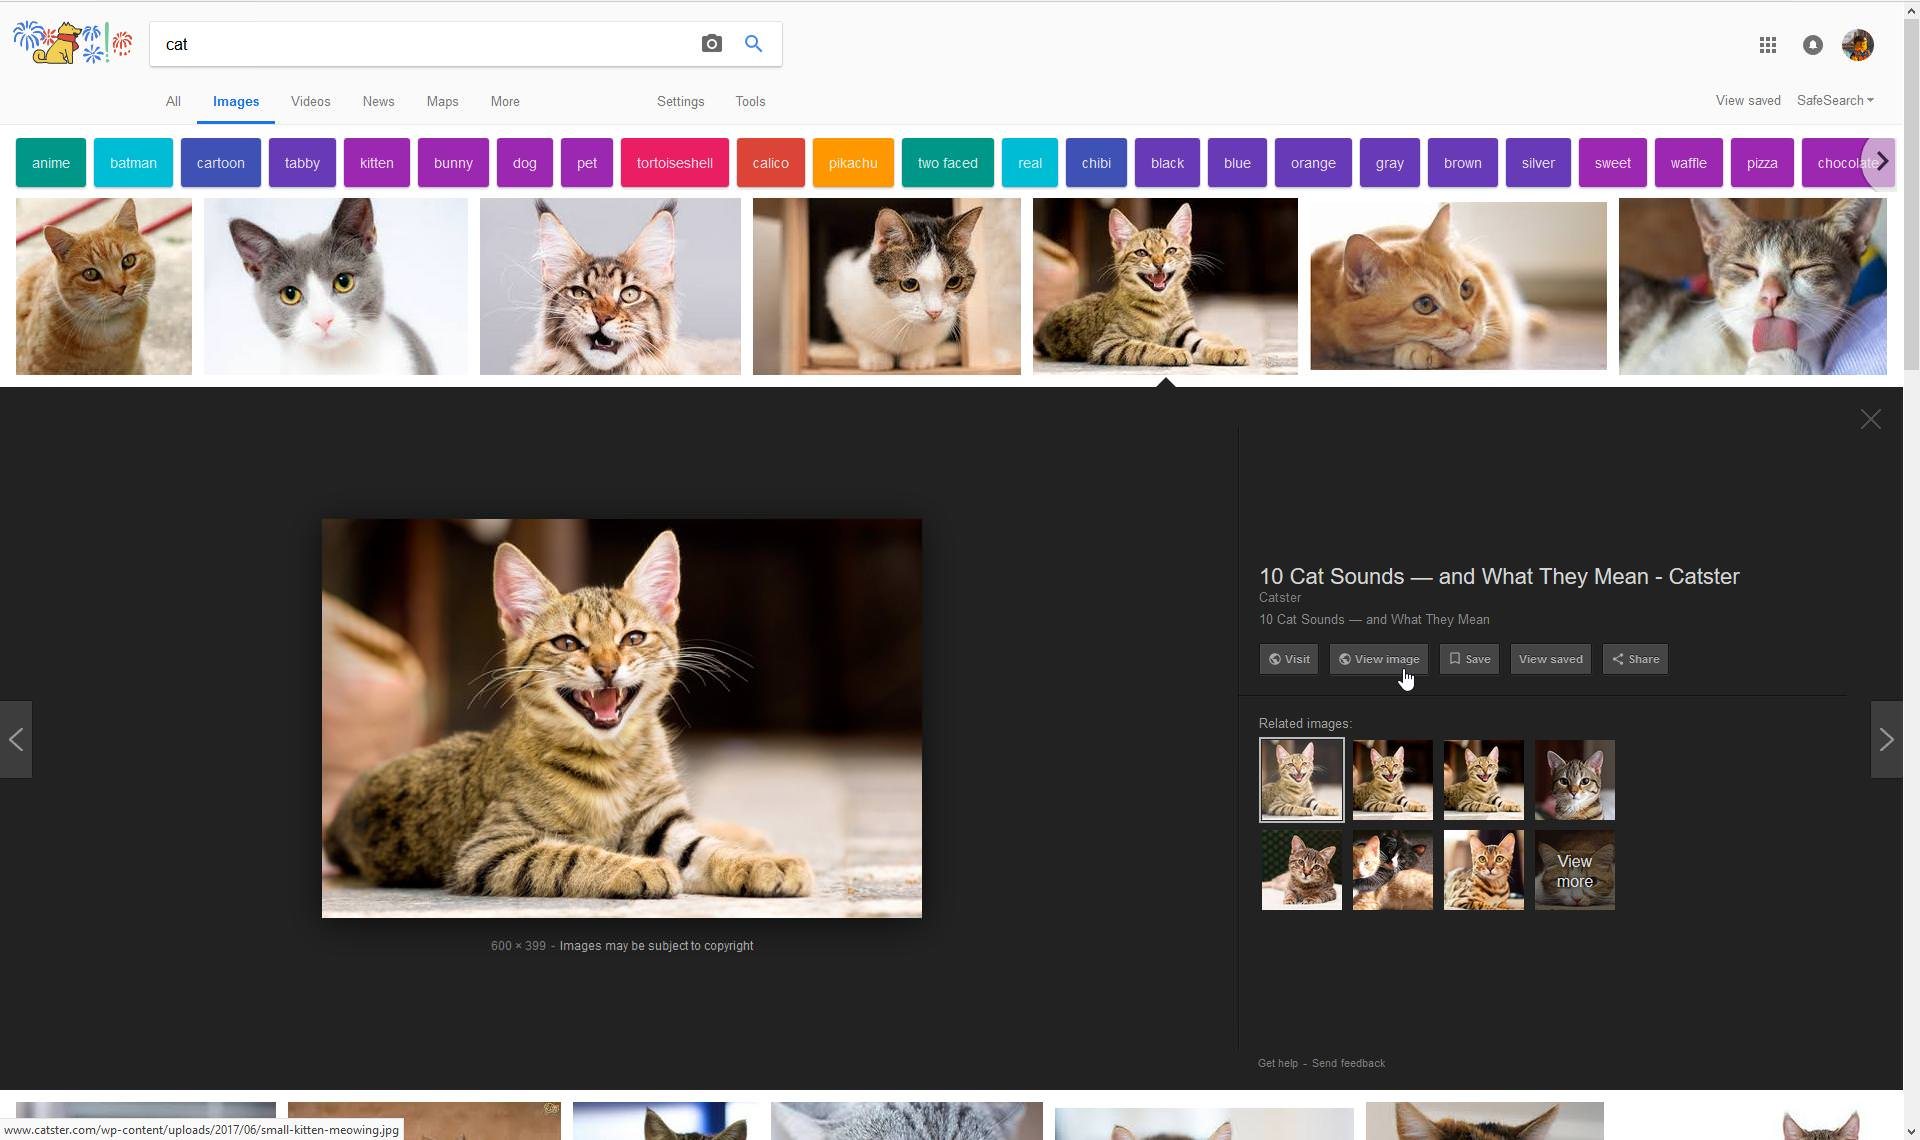 Make Google Image Search Great Again